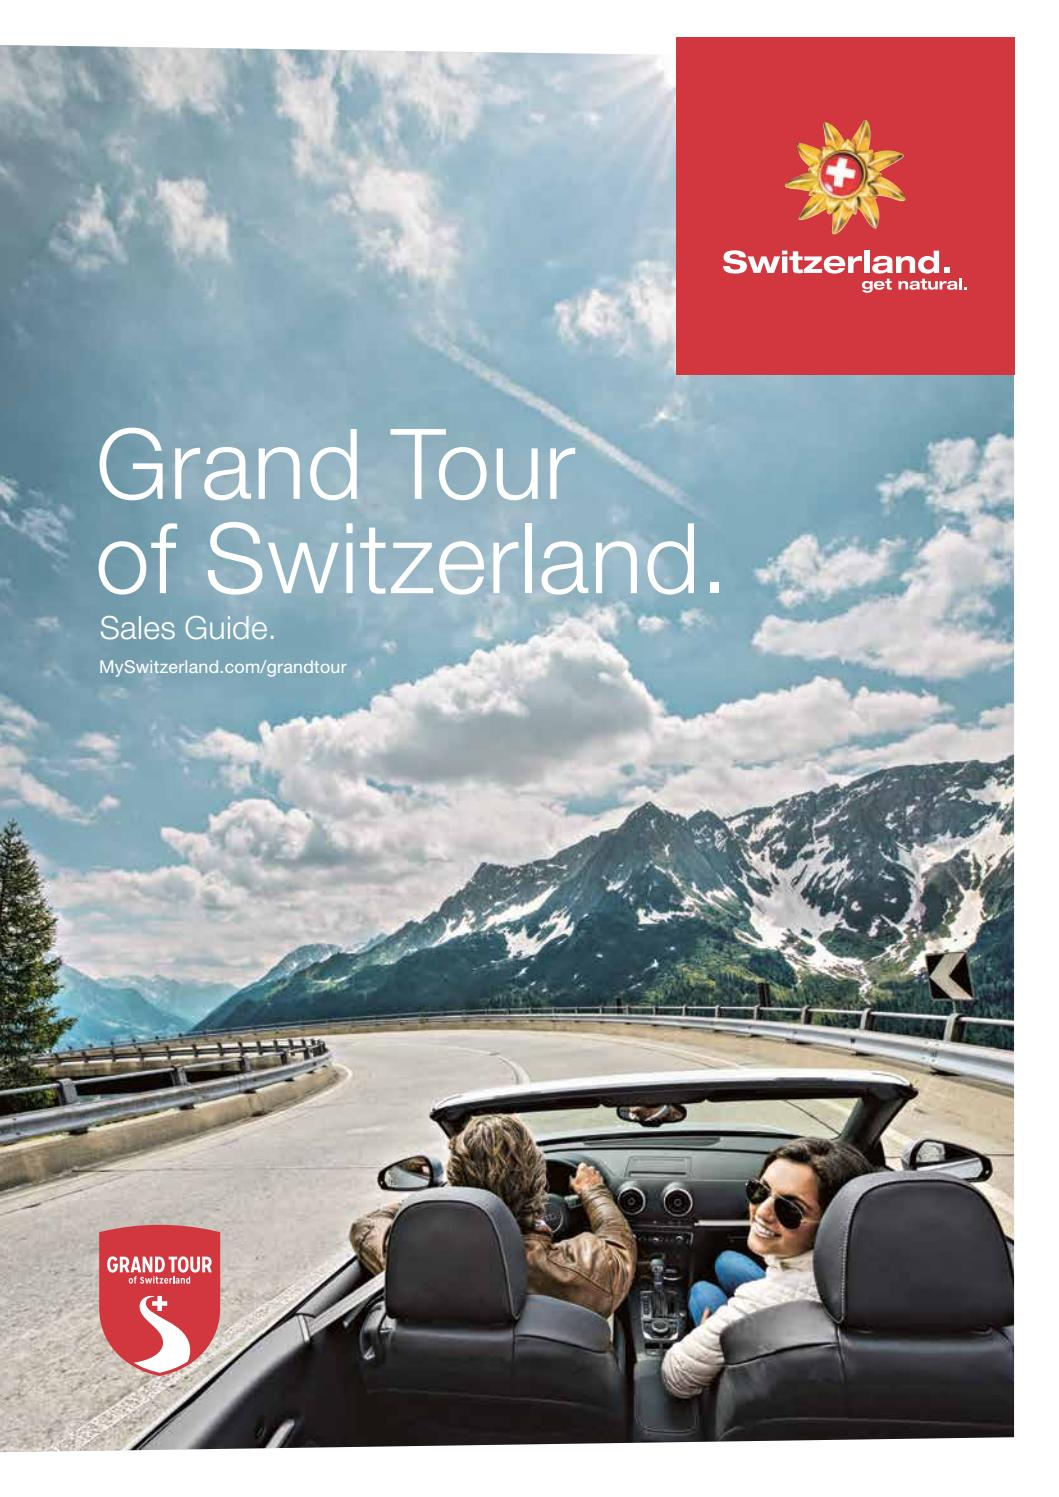 Grand Tour Of Europe S Greatest: Grand Tour Of Switzerland. Sales Guide (SW10031.1002en) By